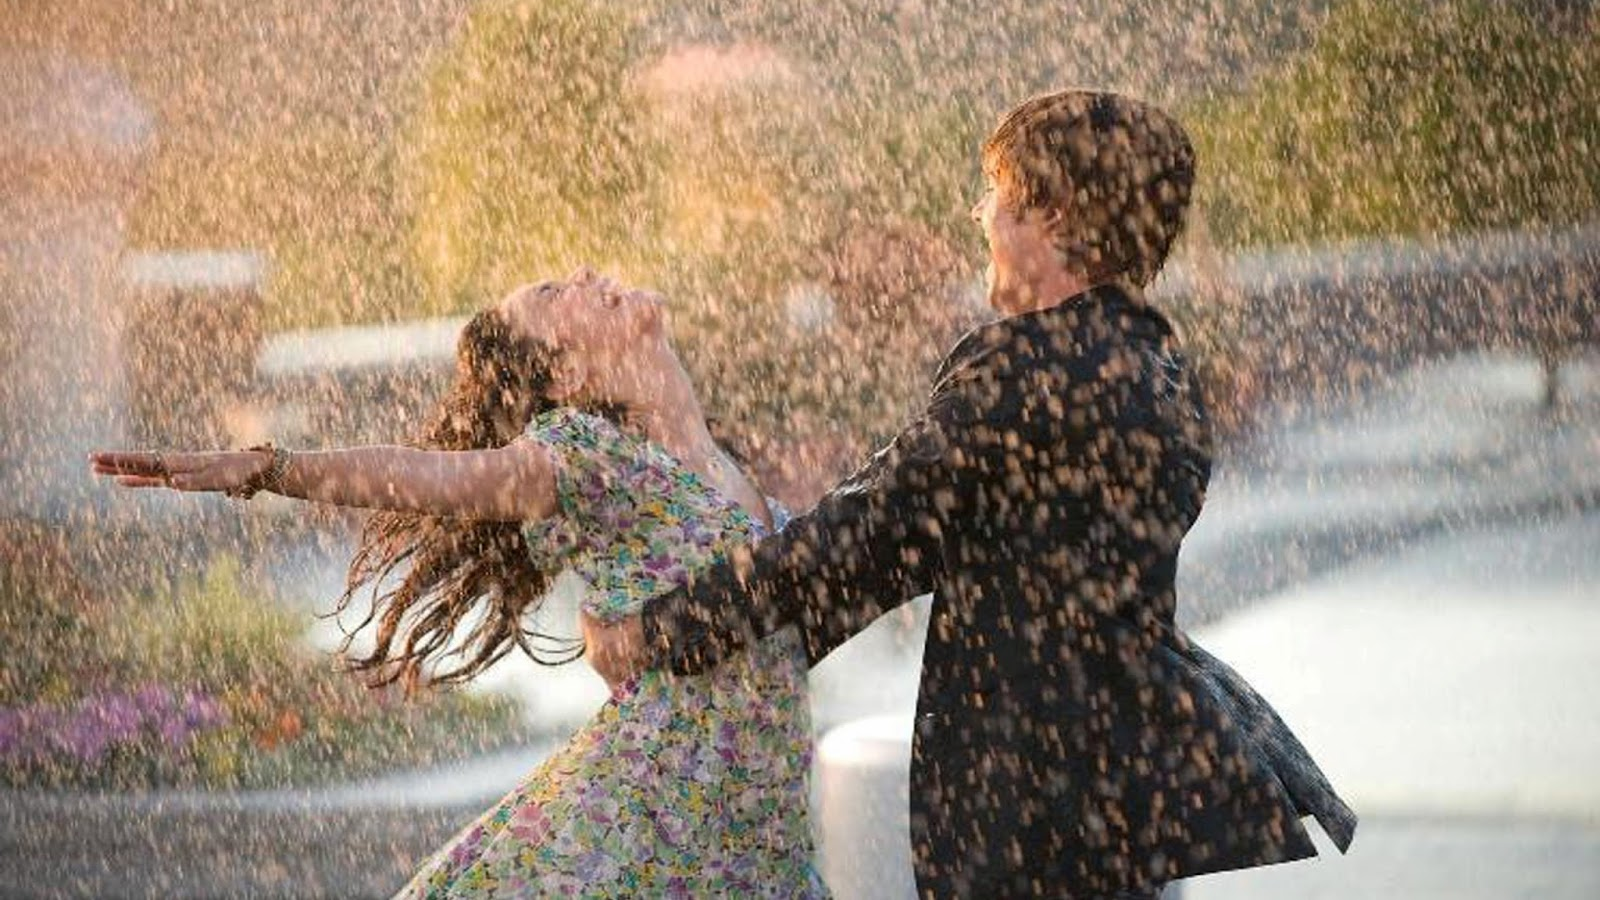 romantic couple in rain - Best Romantic Couple in Rain